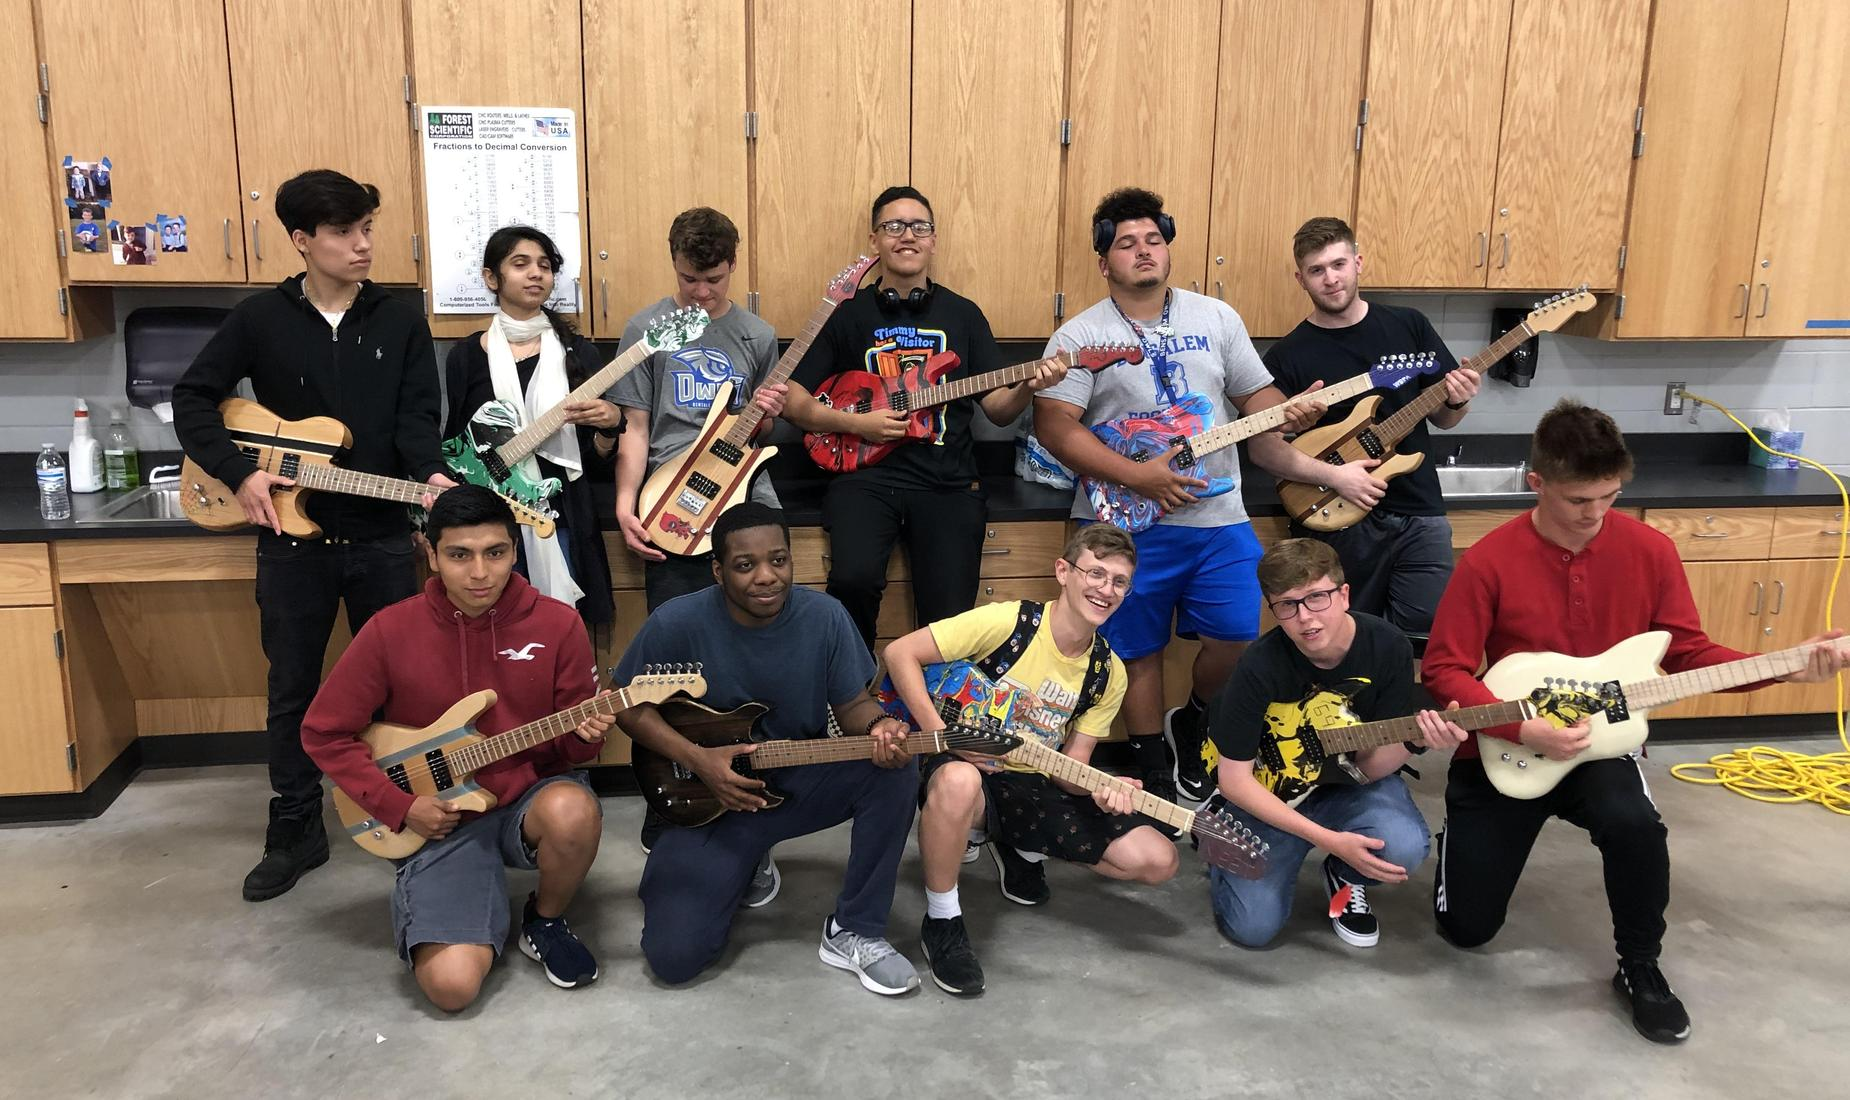 11 BHS STEM Students strumming wood guitars that they made in STEM Class